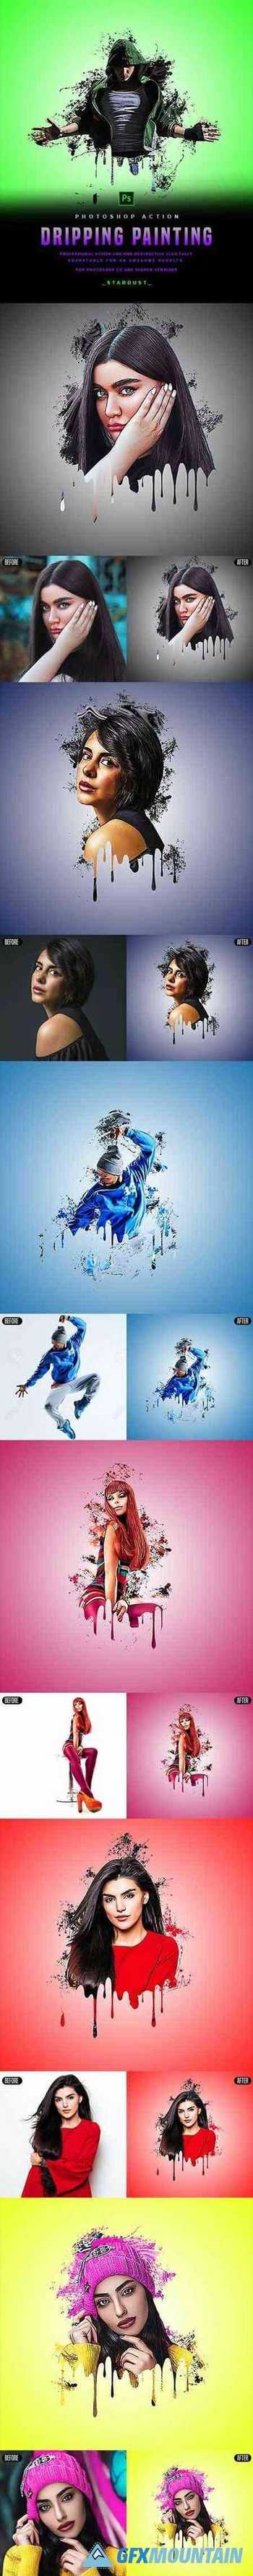 Dripping Painting - Photoshop Action 29878099